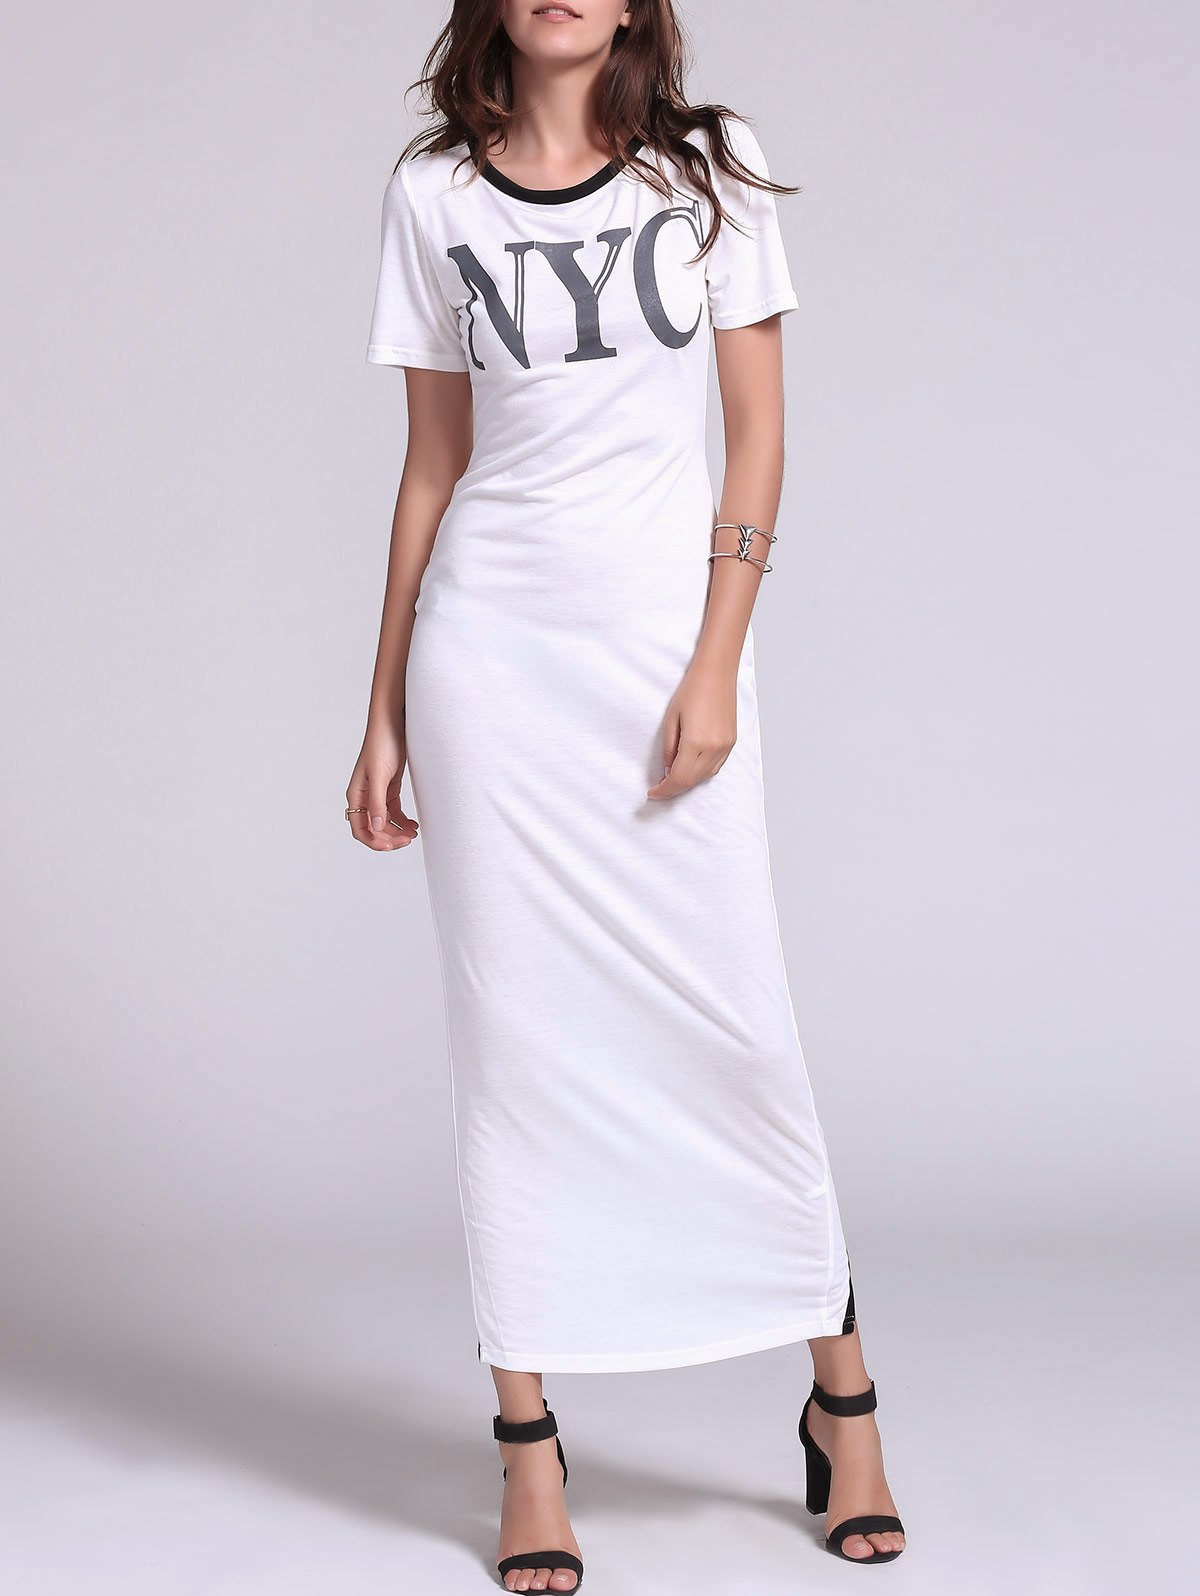 Stylish Split Hollow Out Short Sleeve Dress For Women